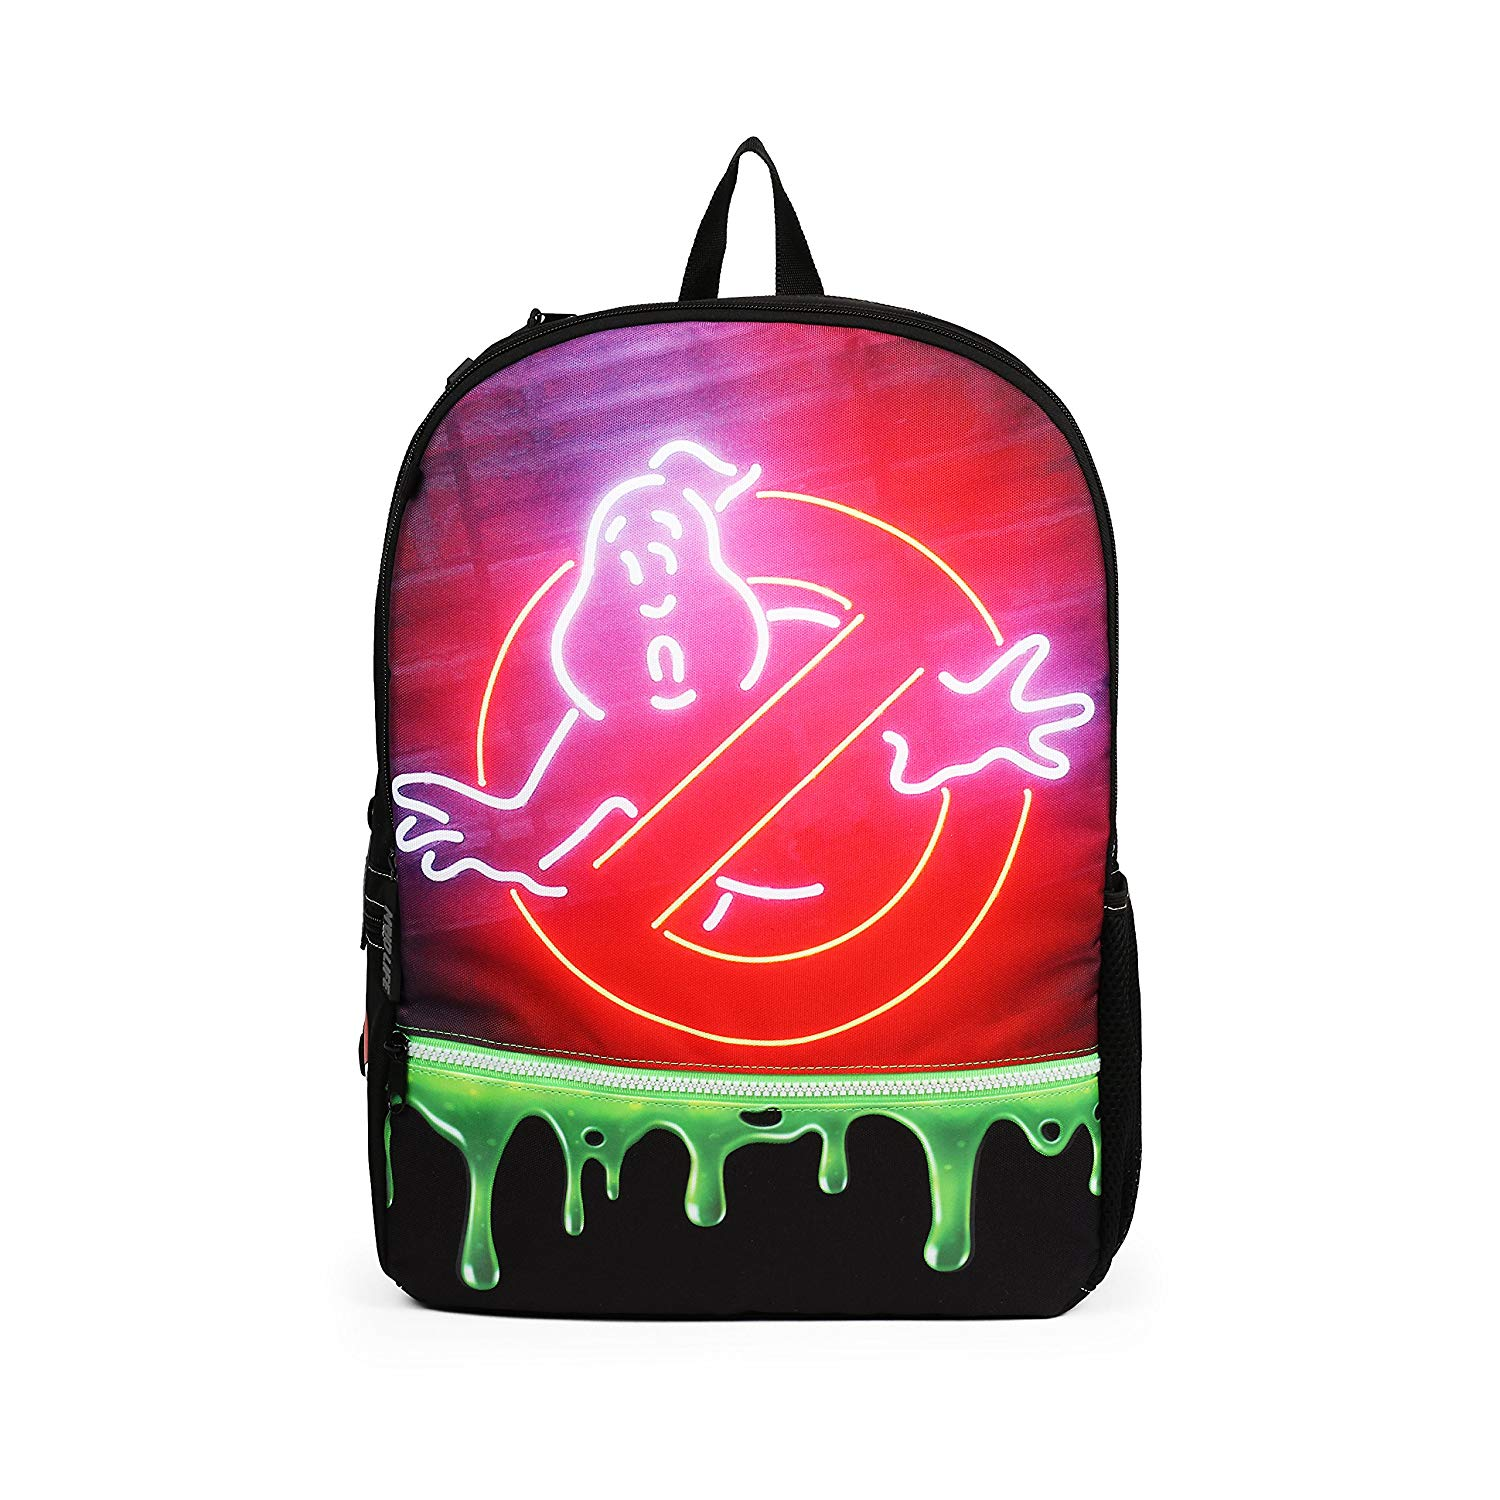 bdd4f72055 Get Quotations · Mojo Ghostbusters Slime Fashion Green 16 Inch Backpack